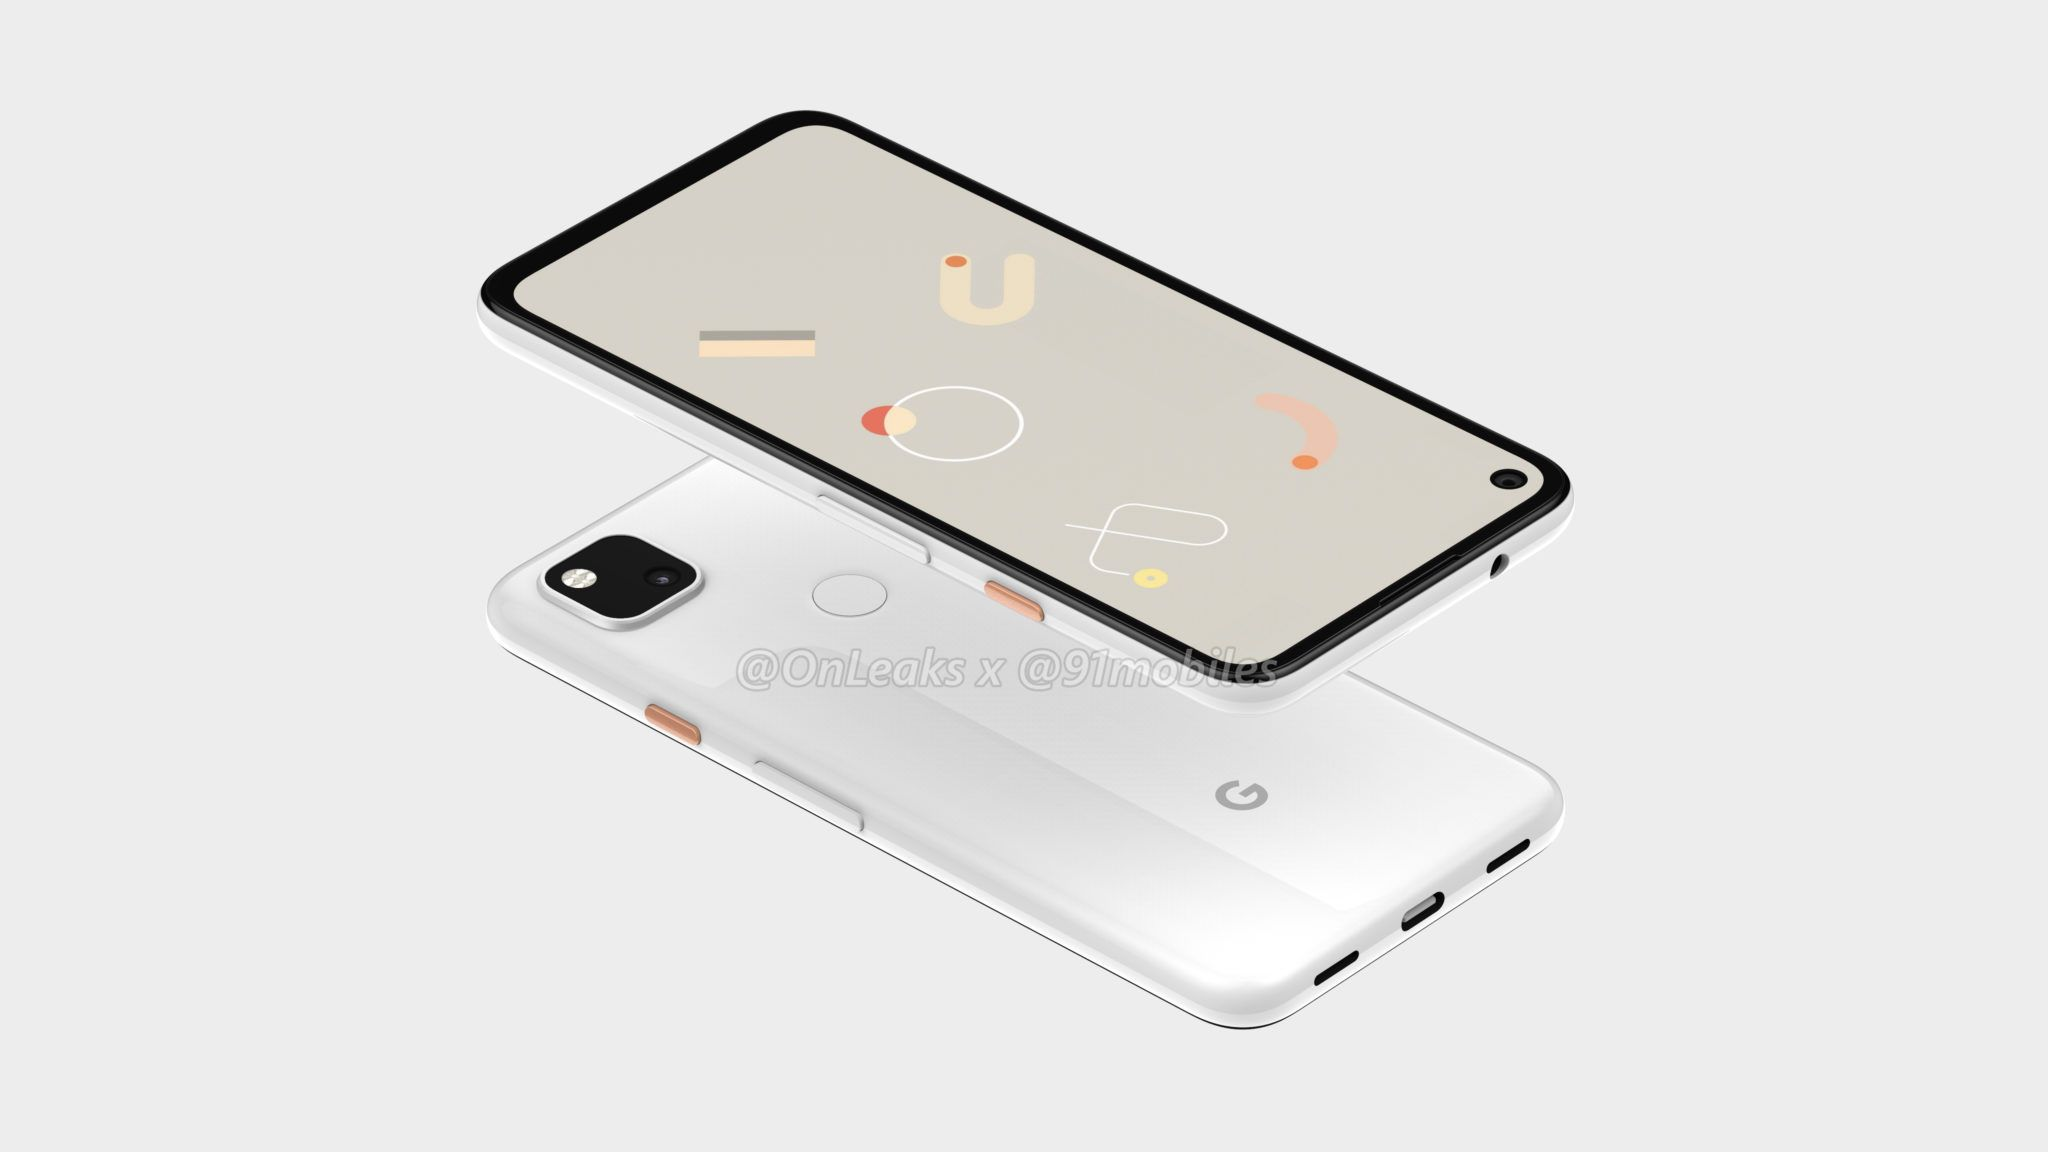 Google Pixel 4a Pixel 4a Xl Leaks And An Official 3d Render Are Published And Also In That Render There Are Few De Google Pixel Google Phones Best Smartphone